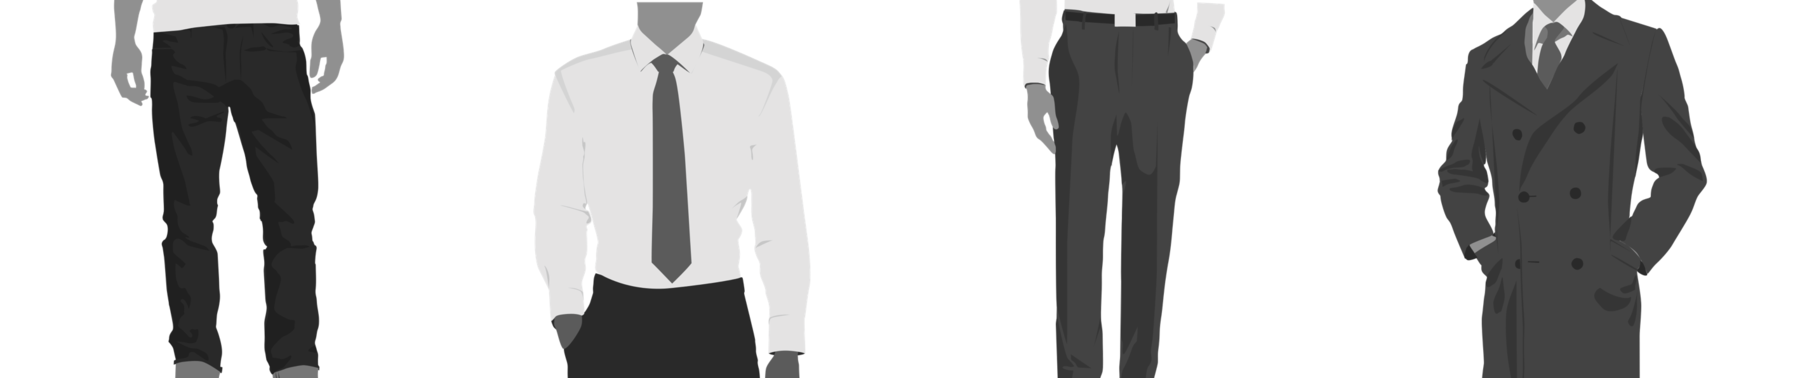 Clothing Fit Dataset for Size Recommendation | Kaggle